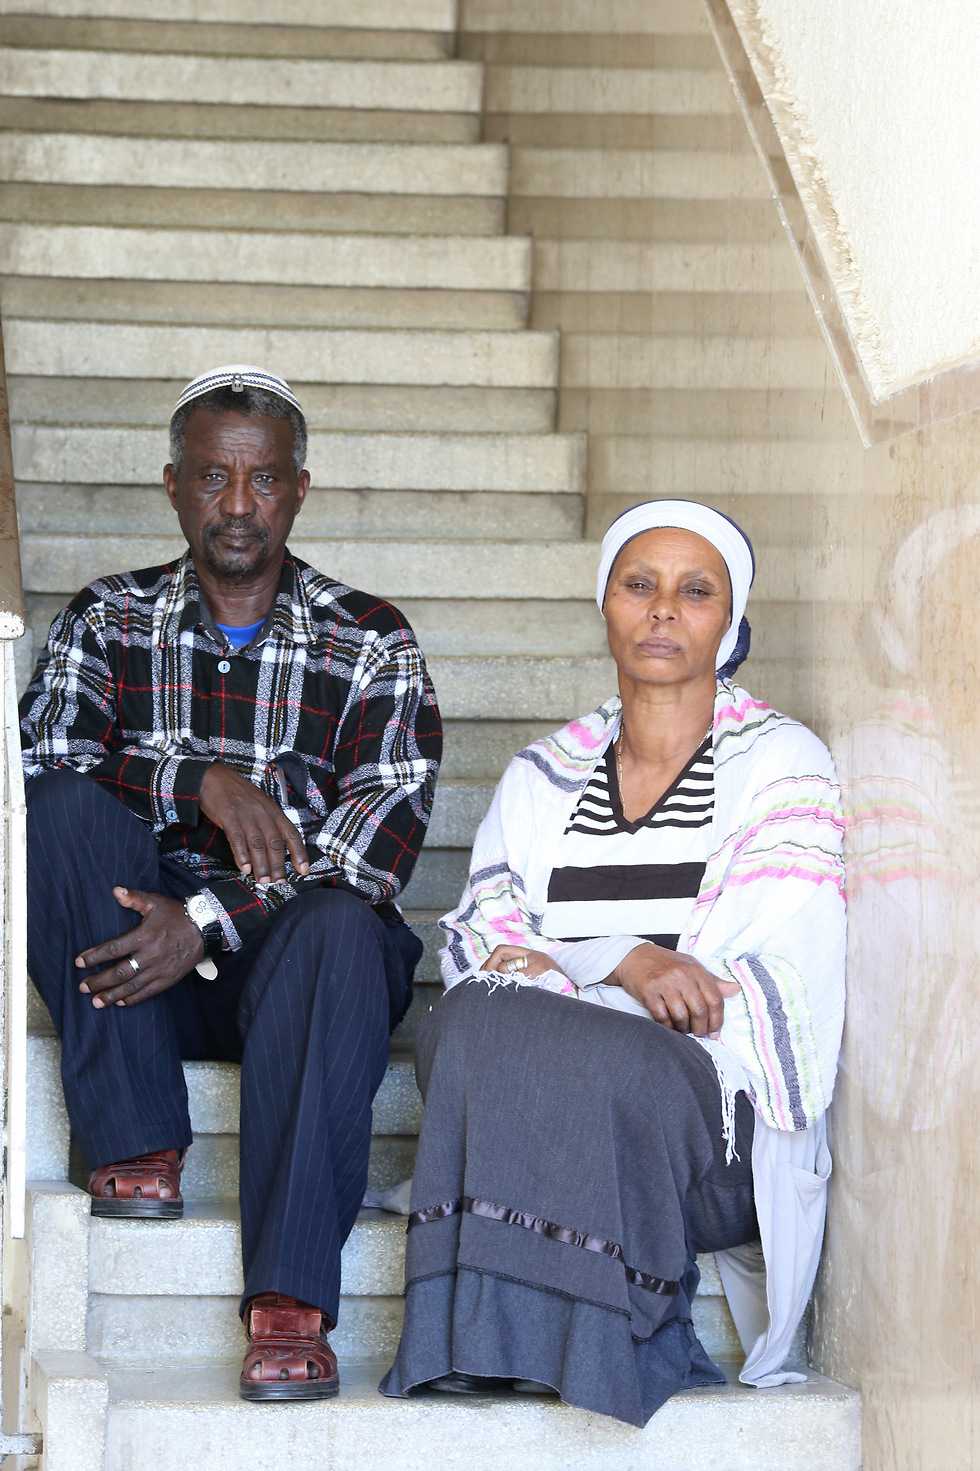 Ayaline and Agernash Mengistu, Abera's parents (Photo: Tomeriko)